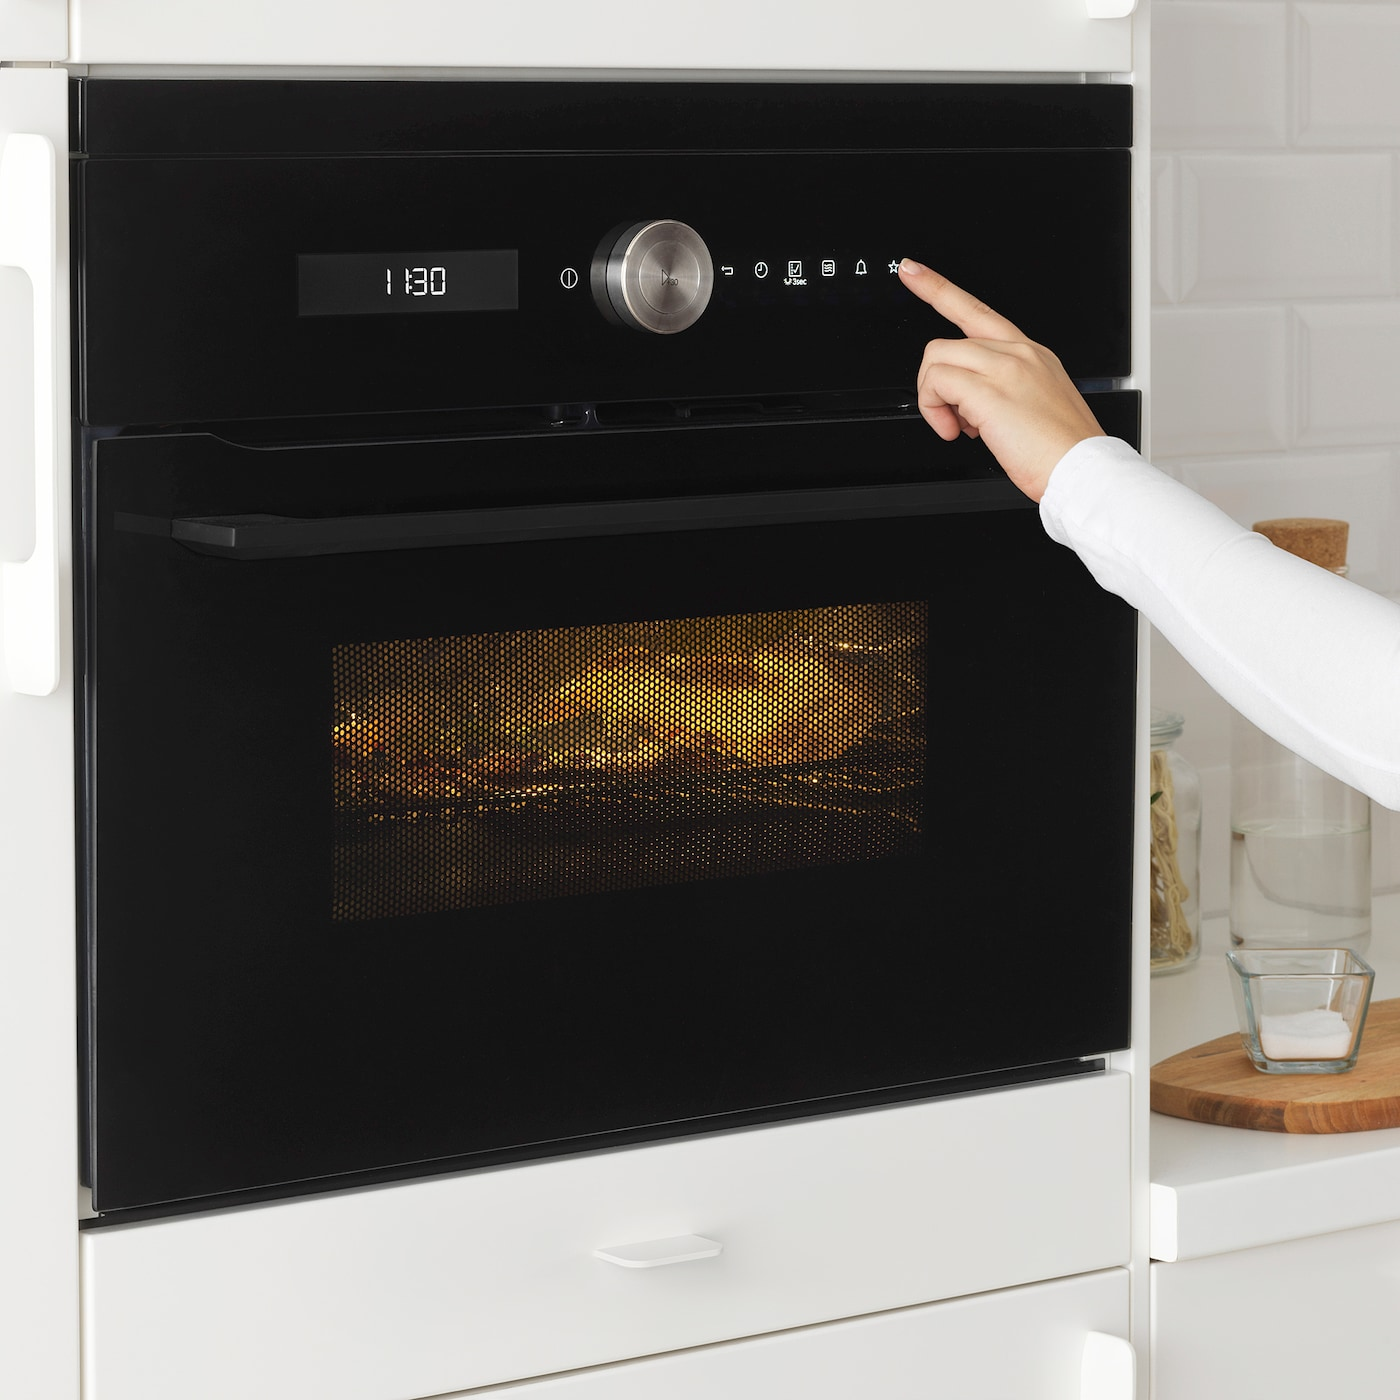 IKEA FINSMAKARE microwave combi with forced air